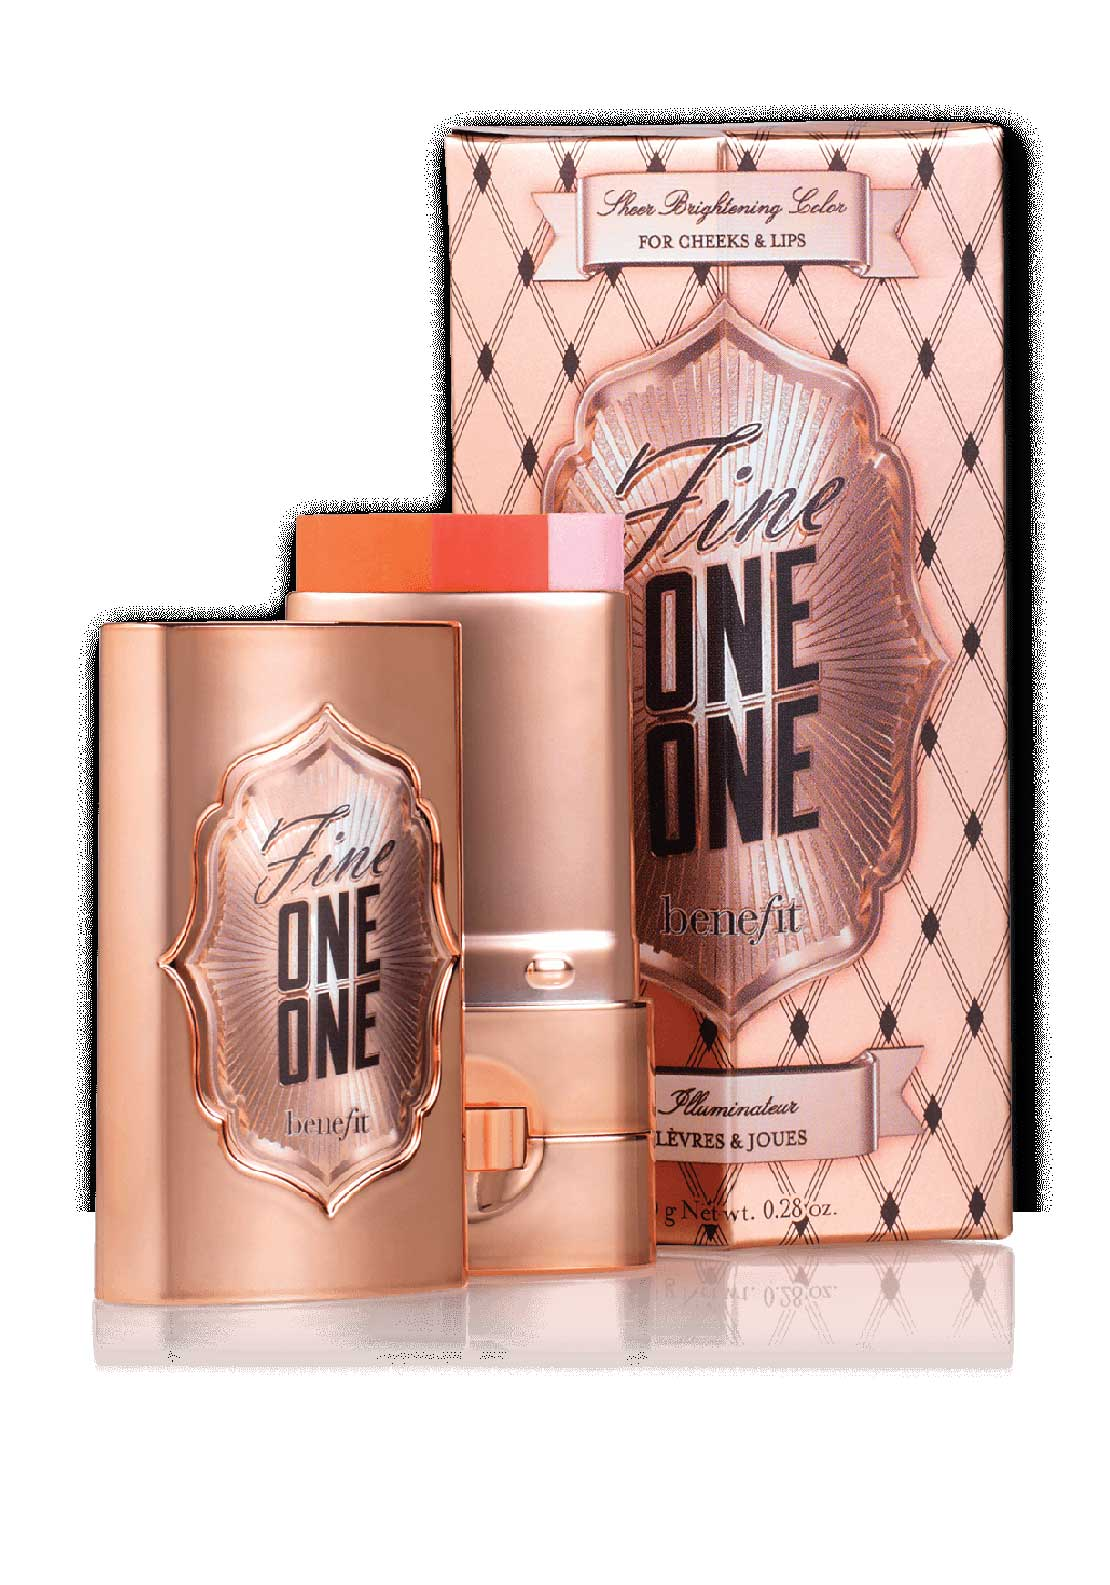 Benefit Fine One One Brightening Cheek and Lip Colour